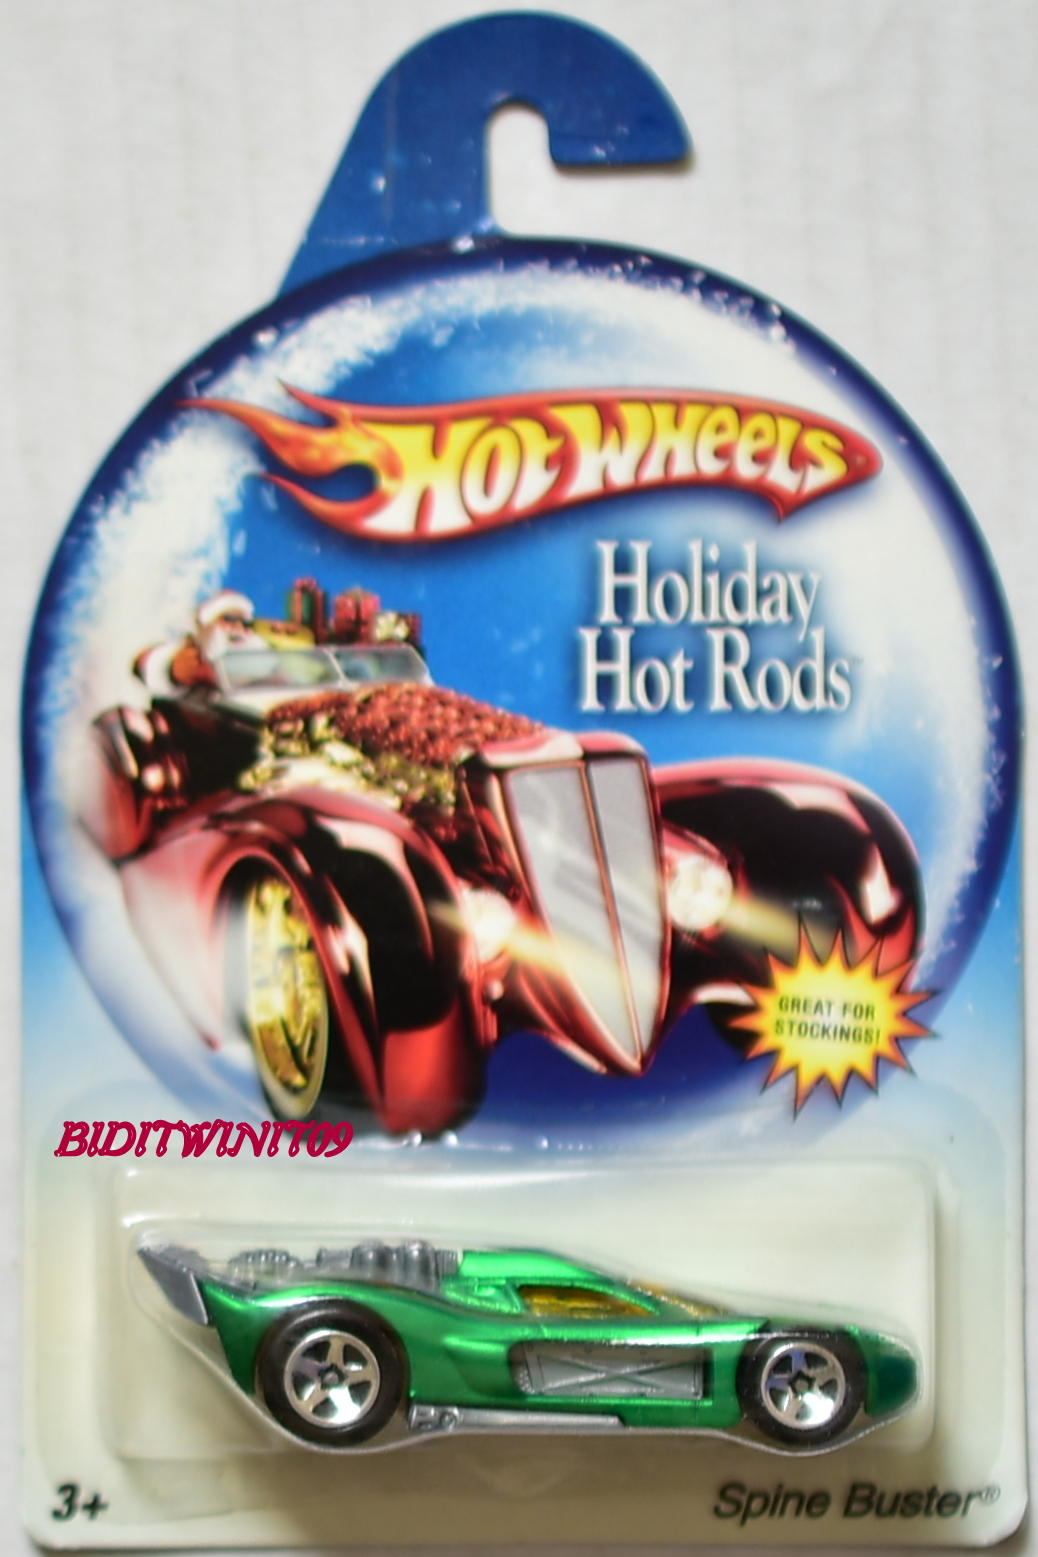 HOT WHEELS HOLIDAY HOT RODS SPINE BUSTER GREEN E+